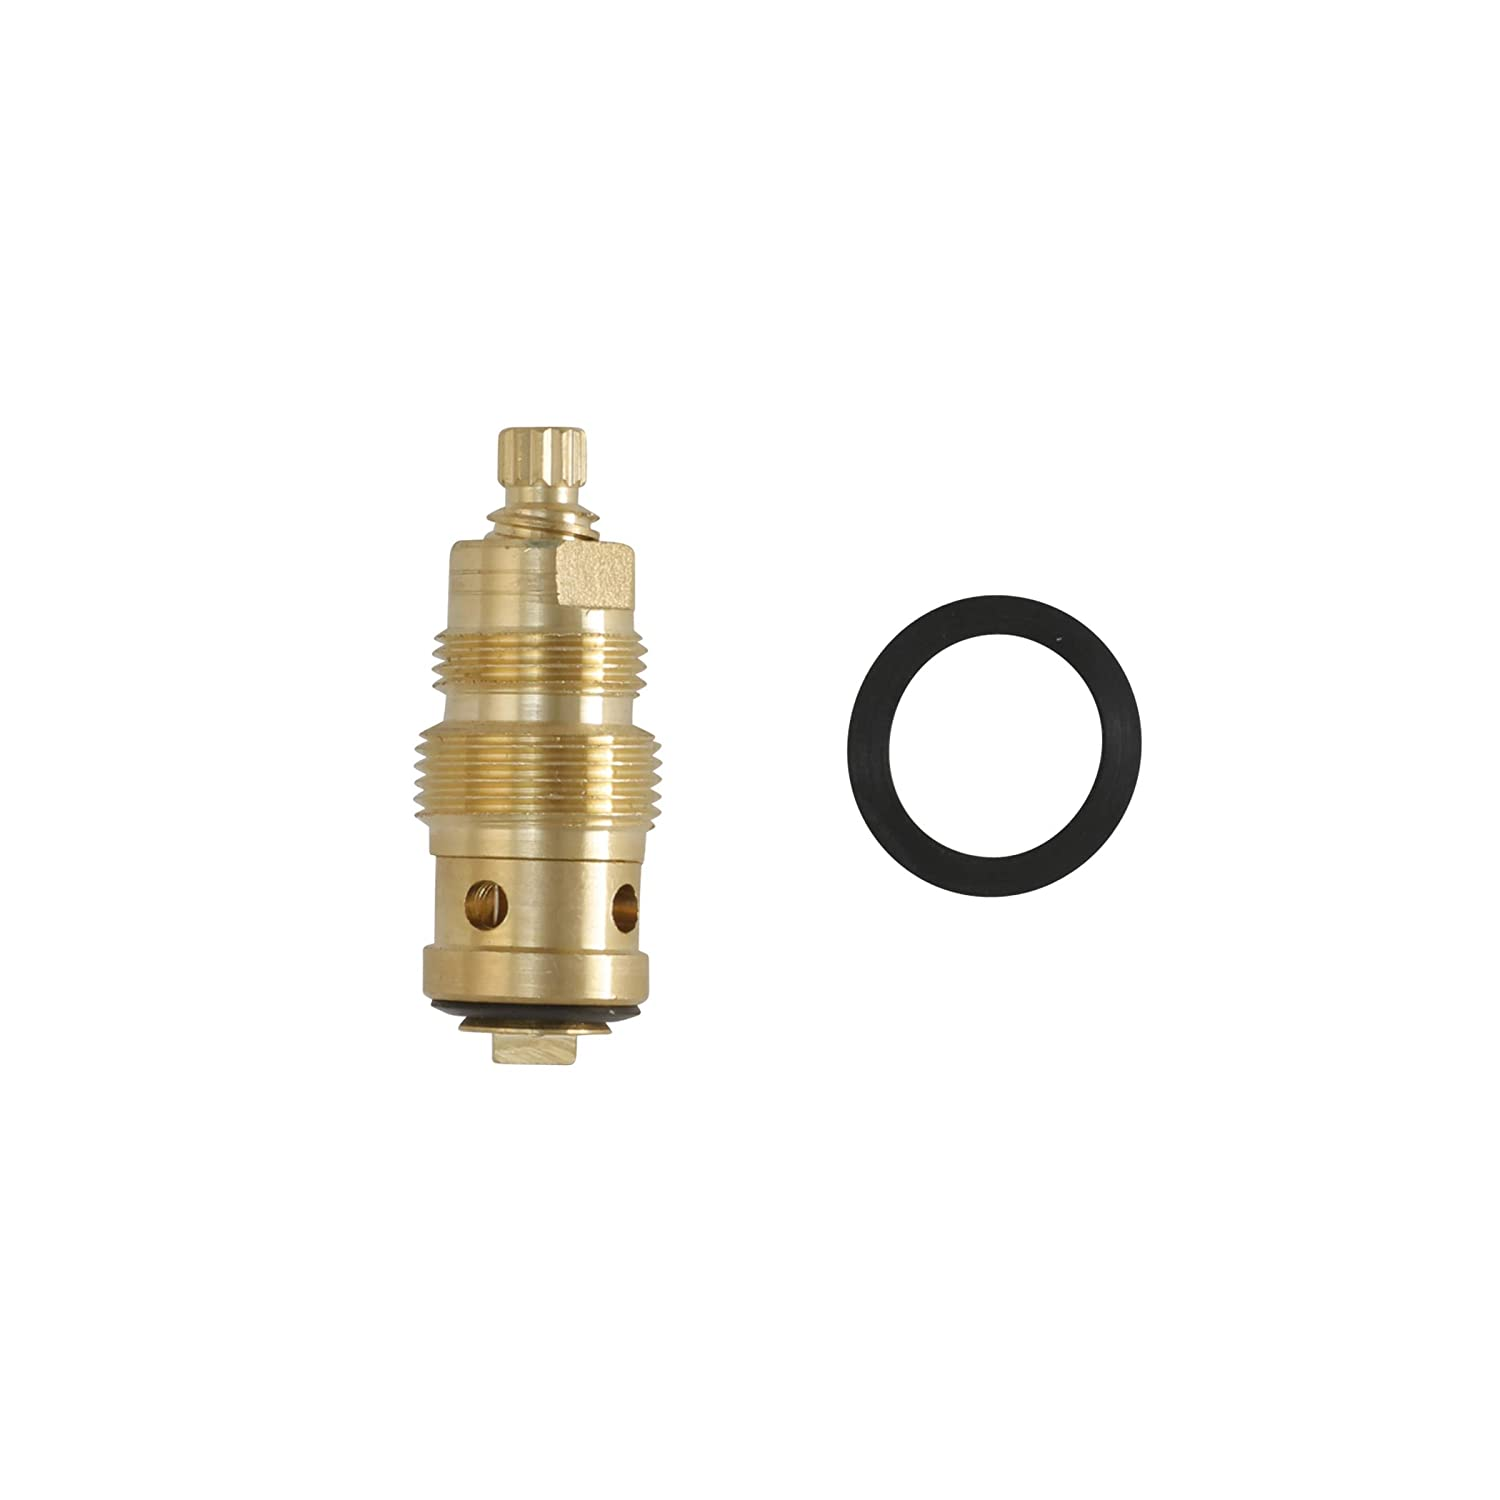 Durable Brass Hot Water Stem for Crane LL Faucets Inc. 1-Set 5A-1H 15119E DANCO Reduced-Lead